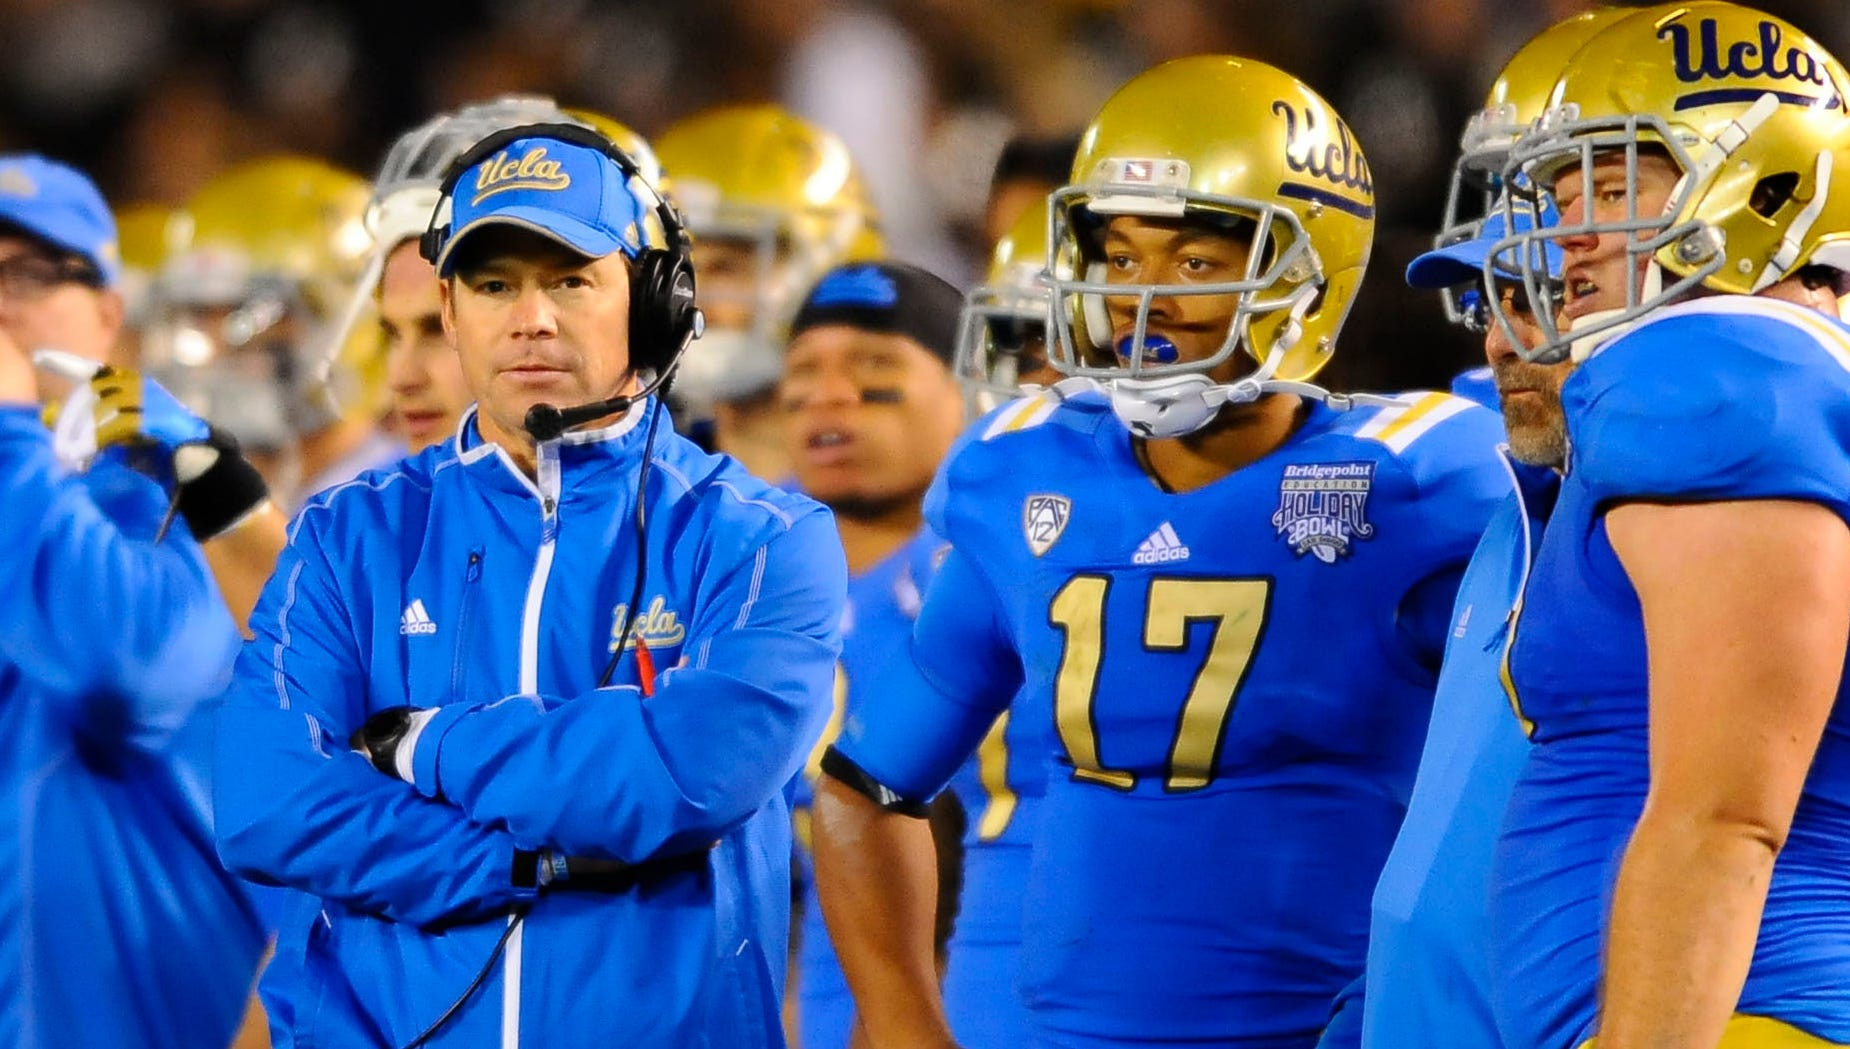 30. UCLA: Jim Mora led the Bruins to the Pac-12 South Division title, upending USC in the process, marking his debut campaign a nearly unqualified success. With key returners and recruits, the next step is moving past the rival Trojans.